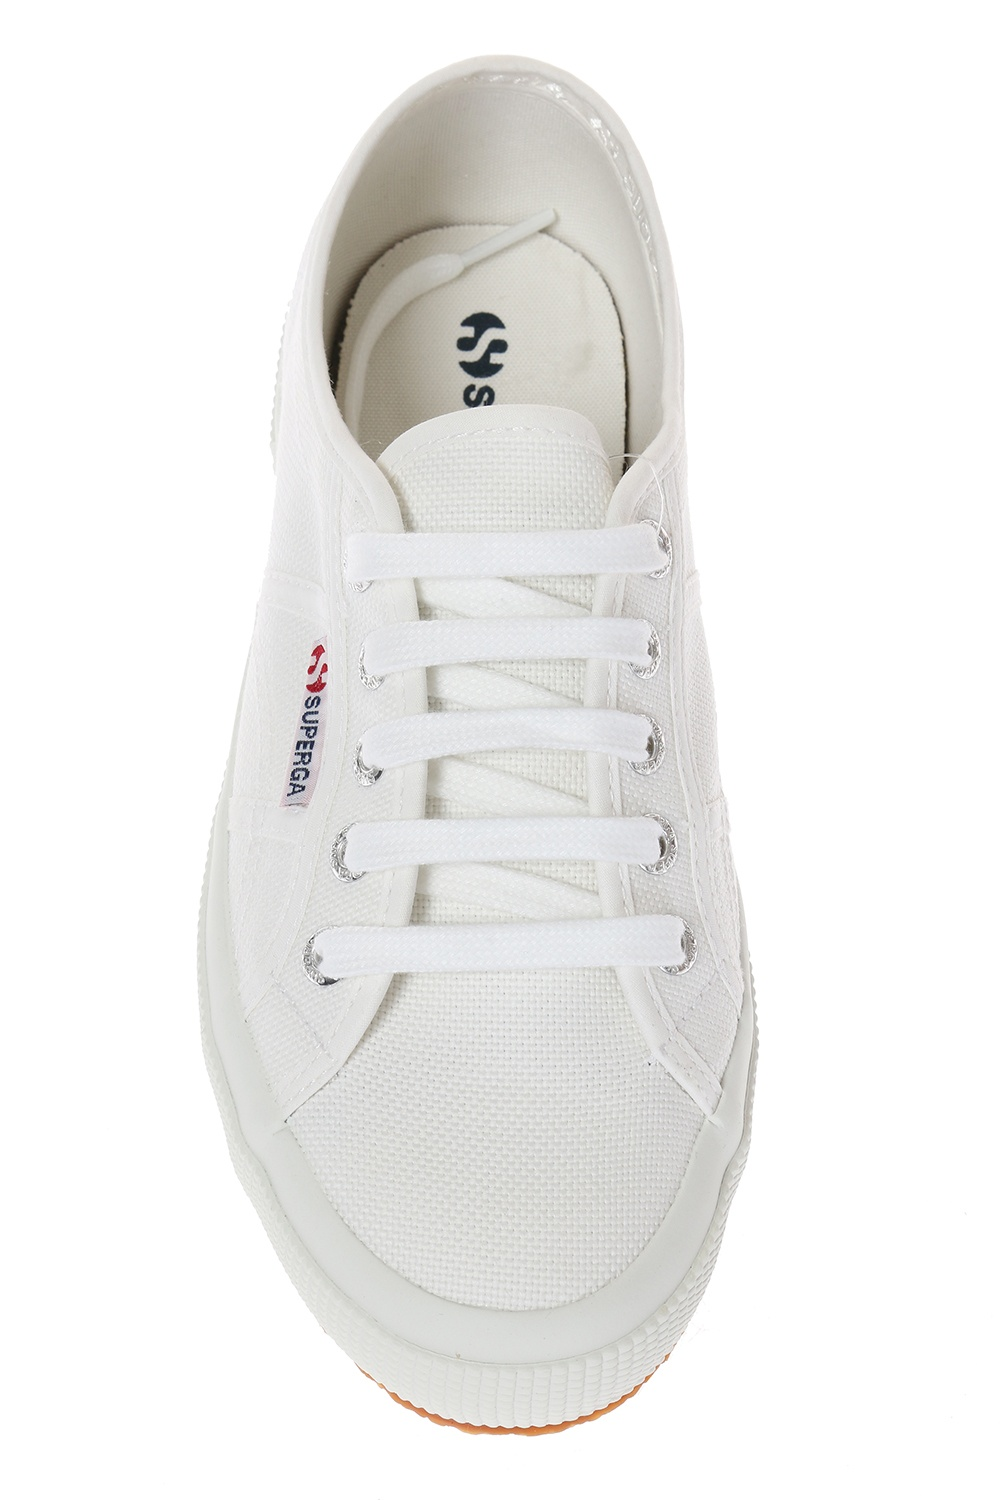 Superga 'Cotu Classic' lace-up sneakers